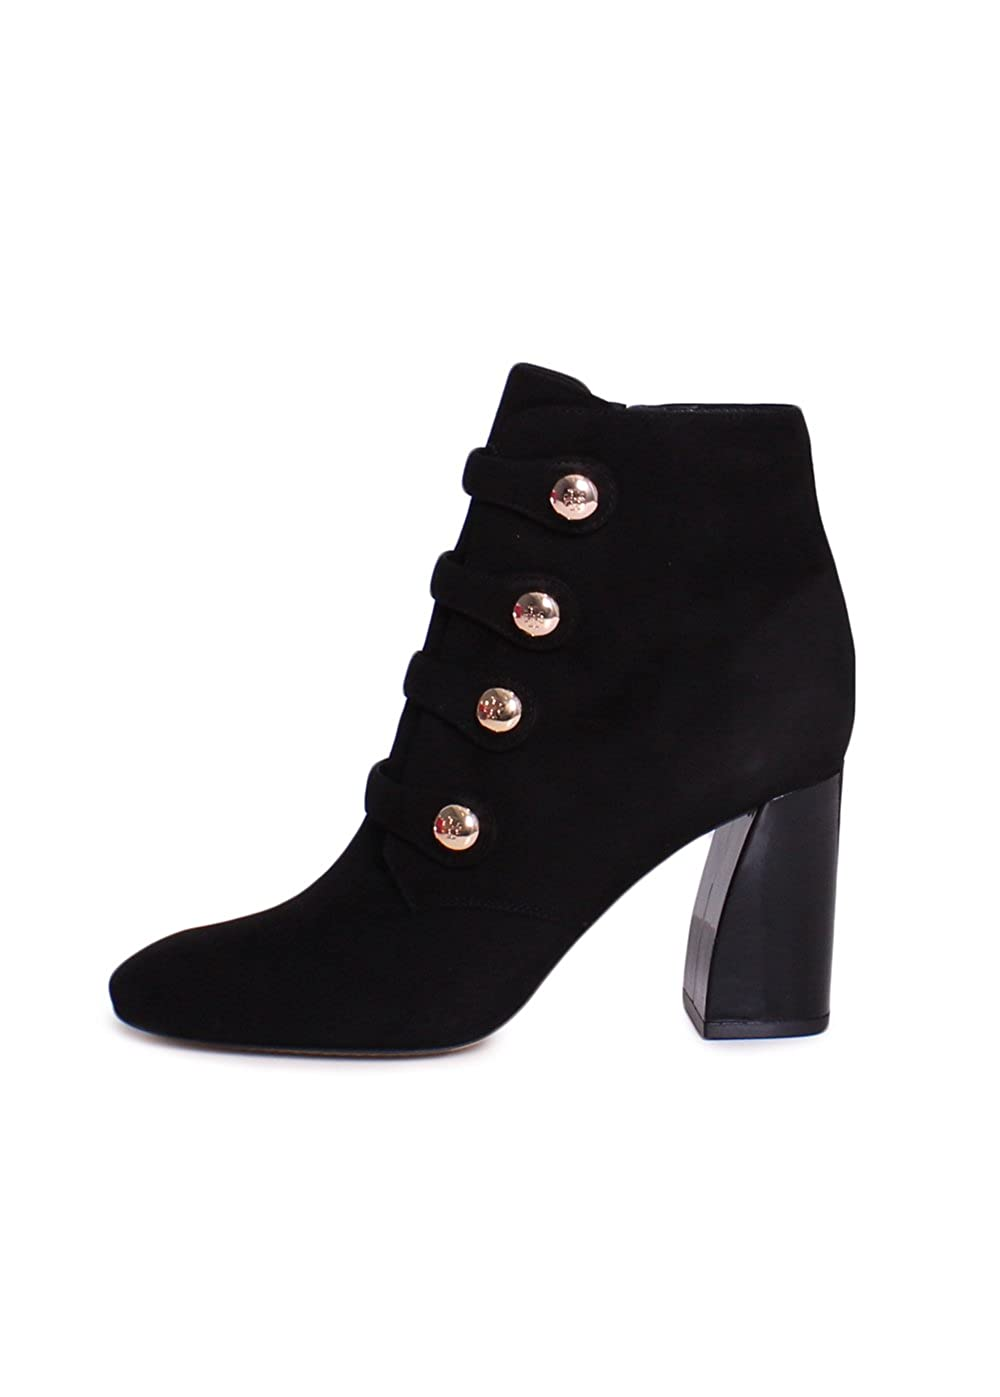 4b5e7747c Tory Burch Marisa Lancaster Suede 85MM Strappy Button Ankle Booties in Black  Size 8  Amazon.ca  Shoes   Handbags